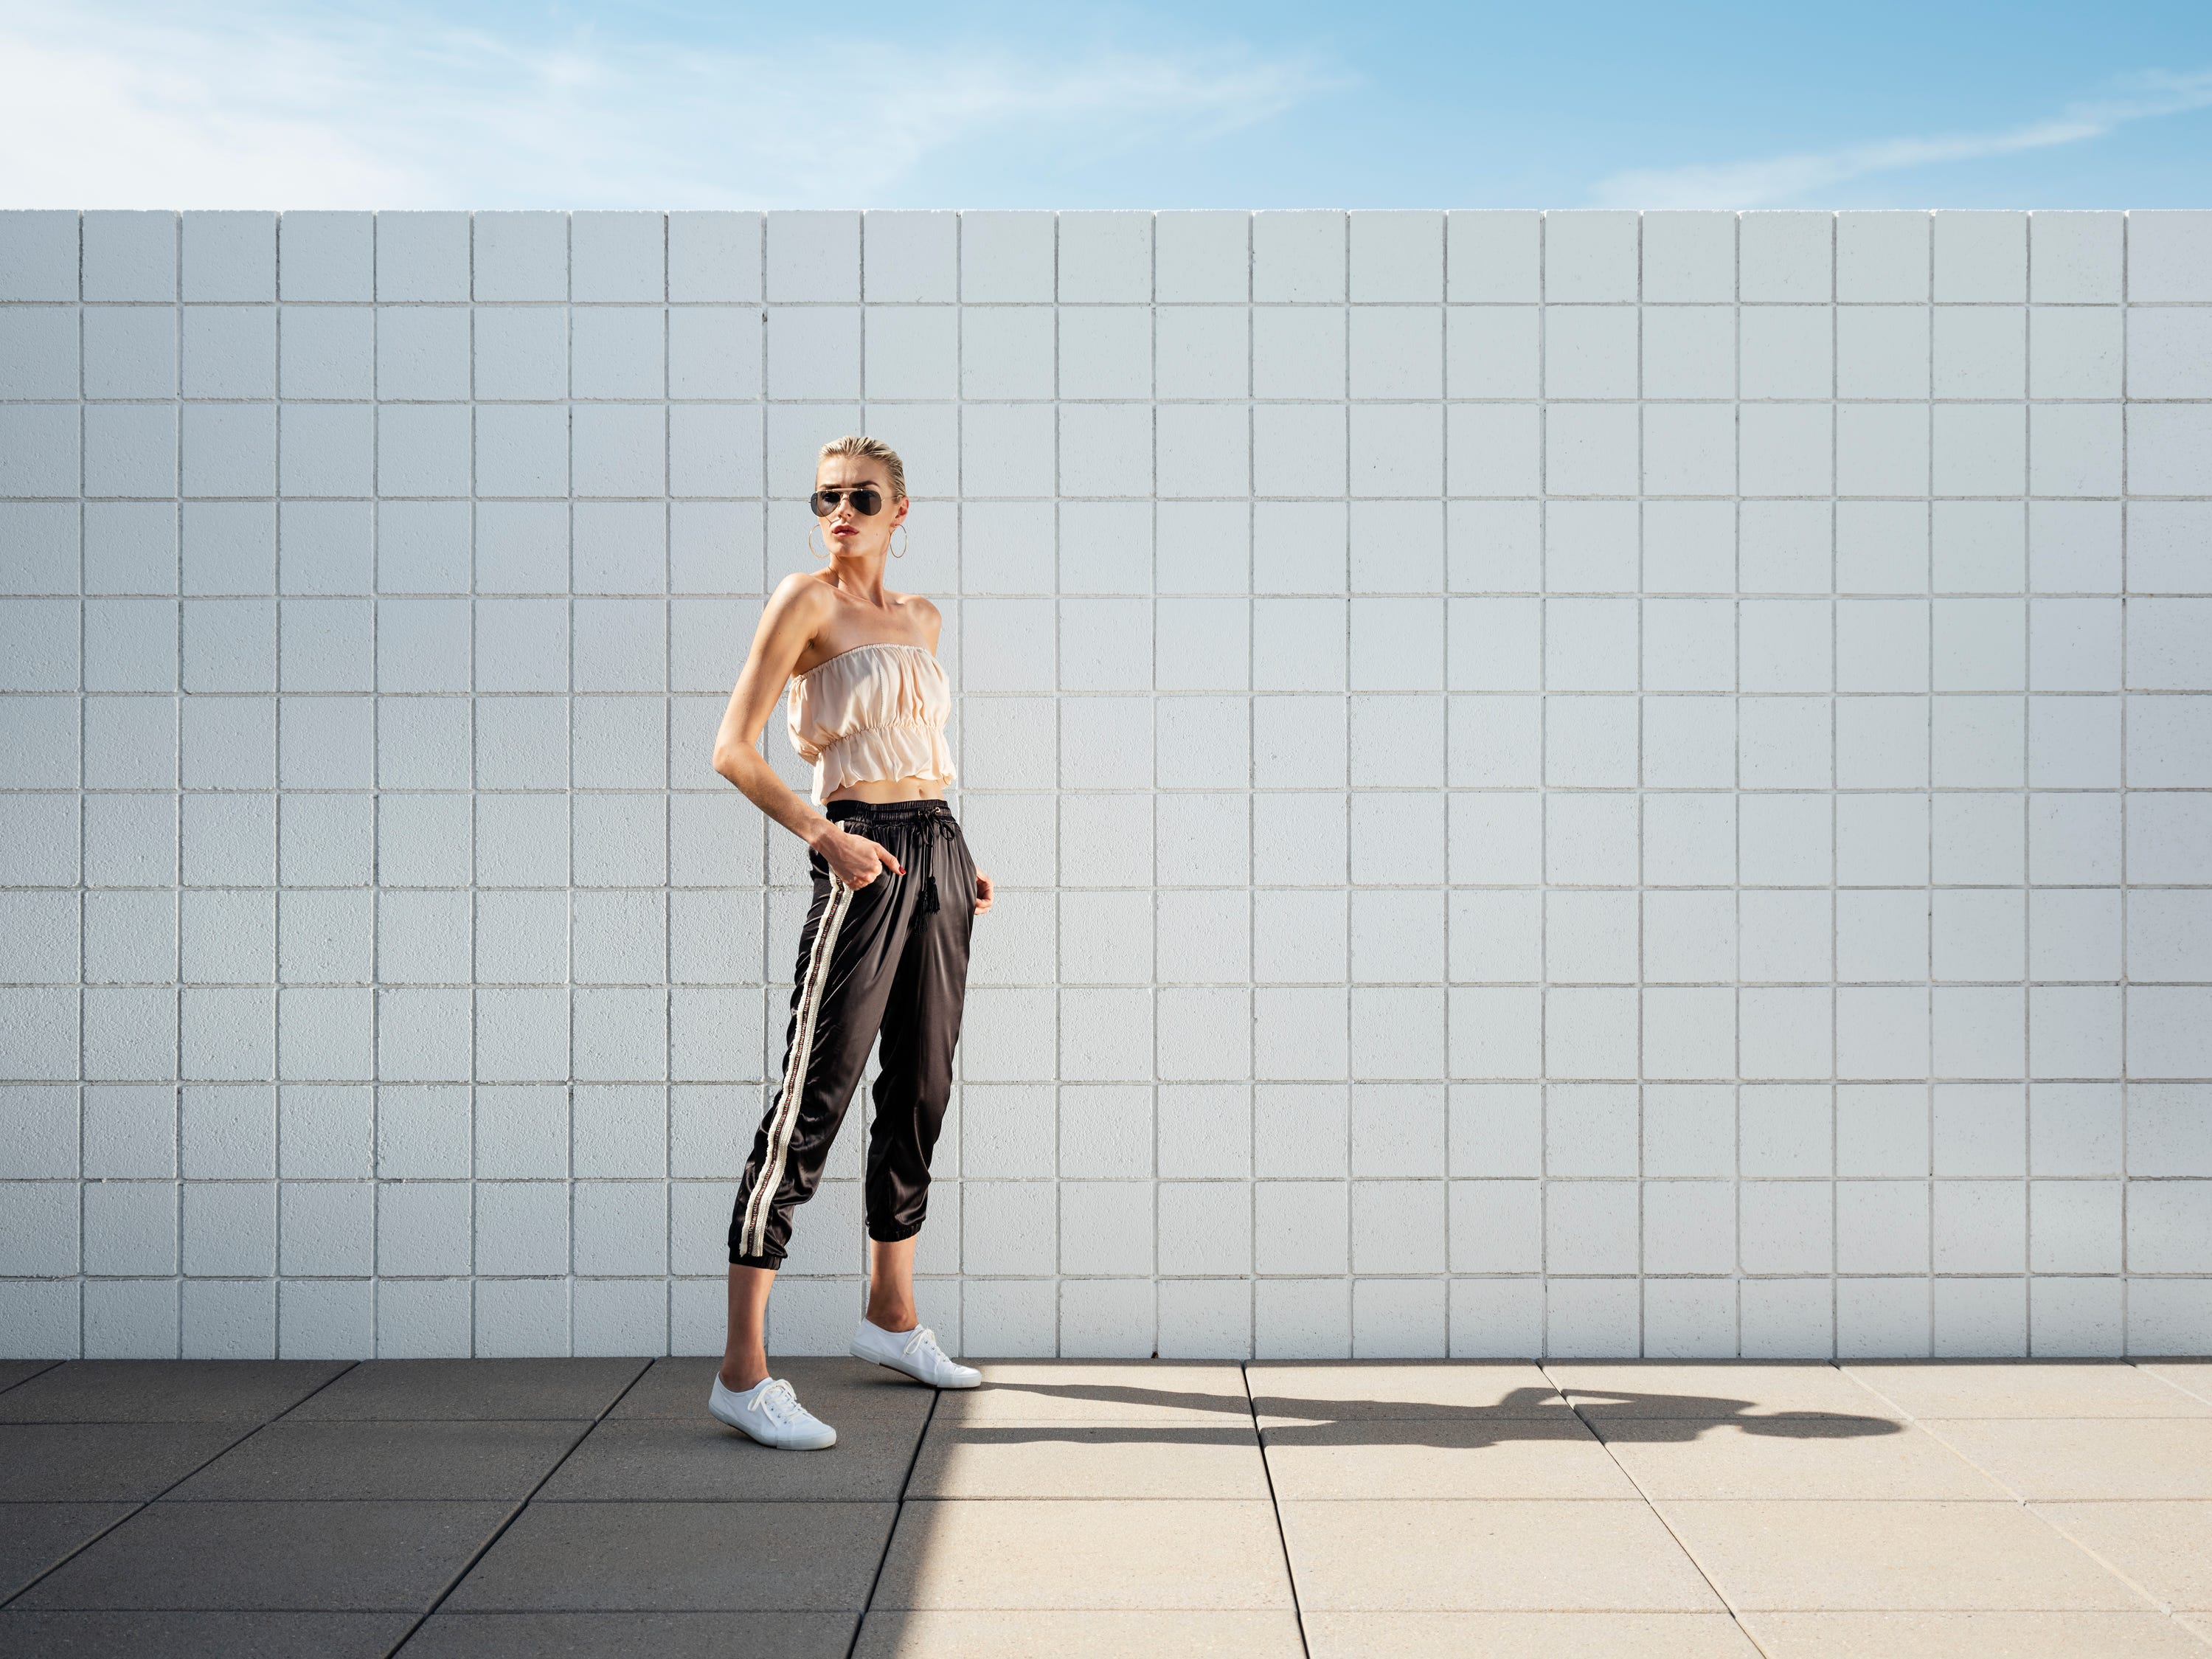 Loyd/Ford top and joggers, at loydford.com. Tennis shoes, sunglasses and earrings, stylist's own. (Styling by Neil Cohen; hair and makeup by Chelsea Dorris; model: Milena Ilina; creative direction: Kristin Scharkey; location: Desert One, Palm Springs)